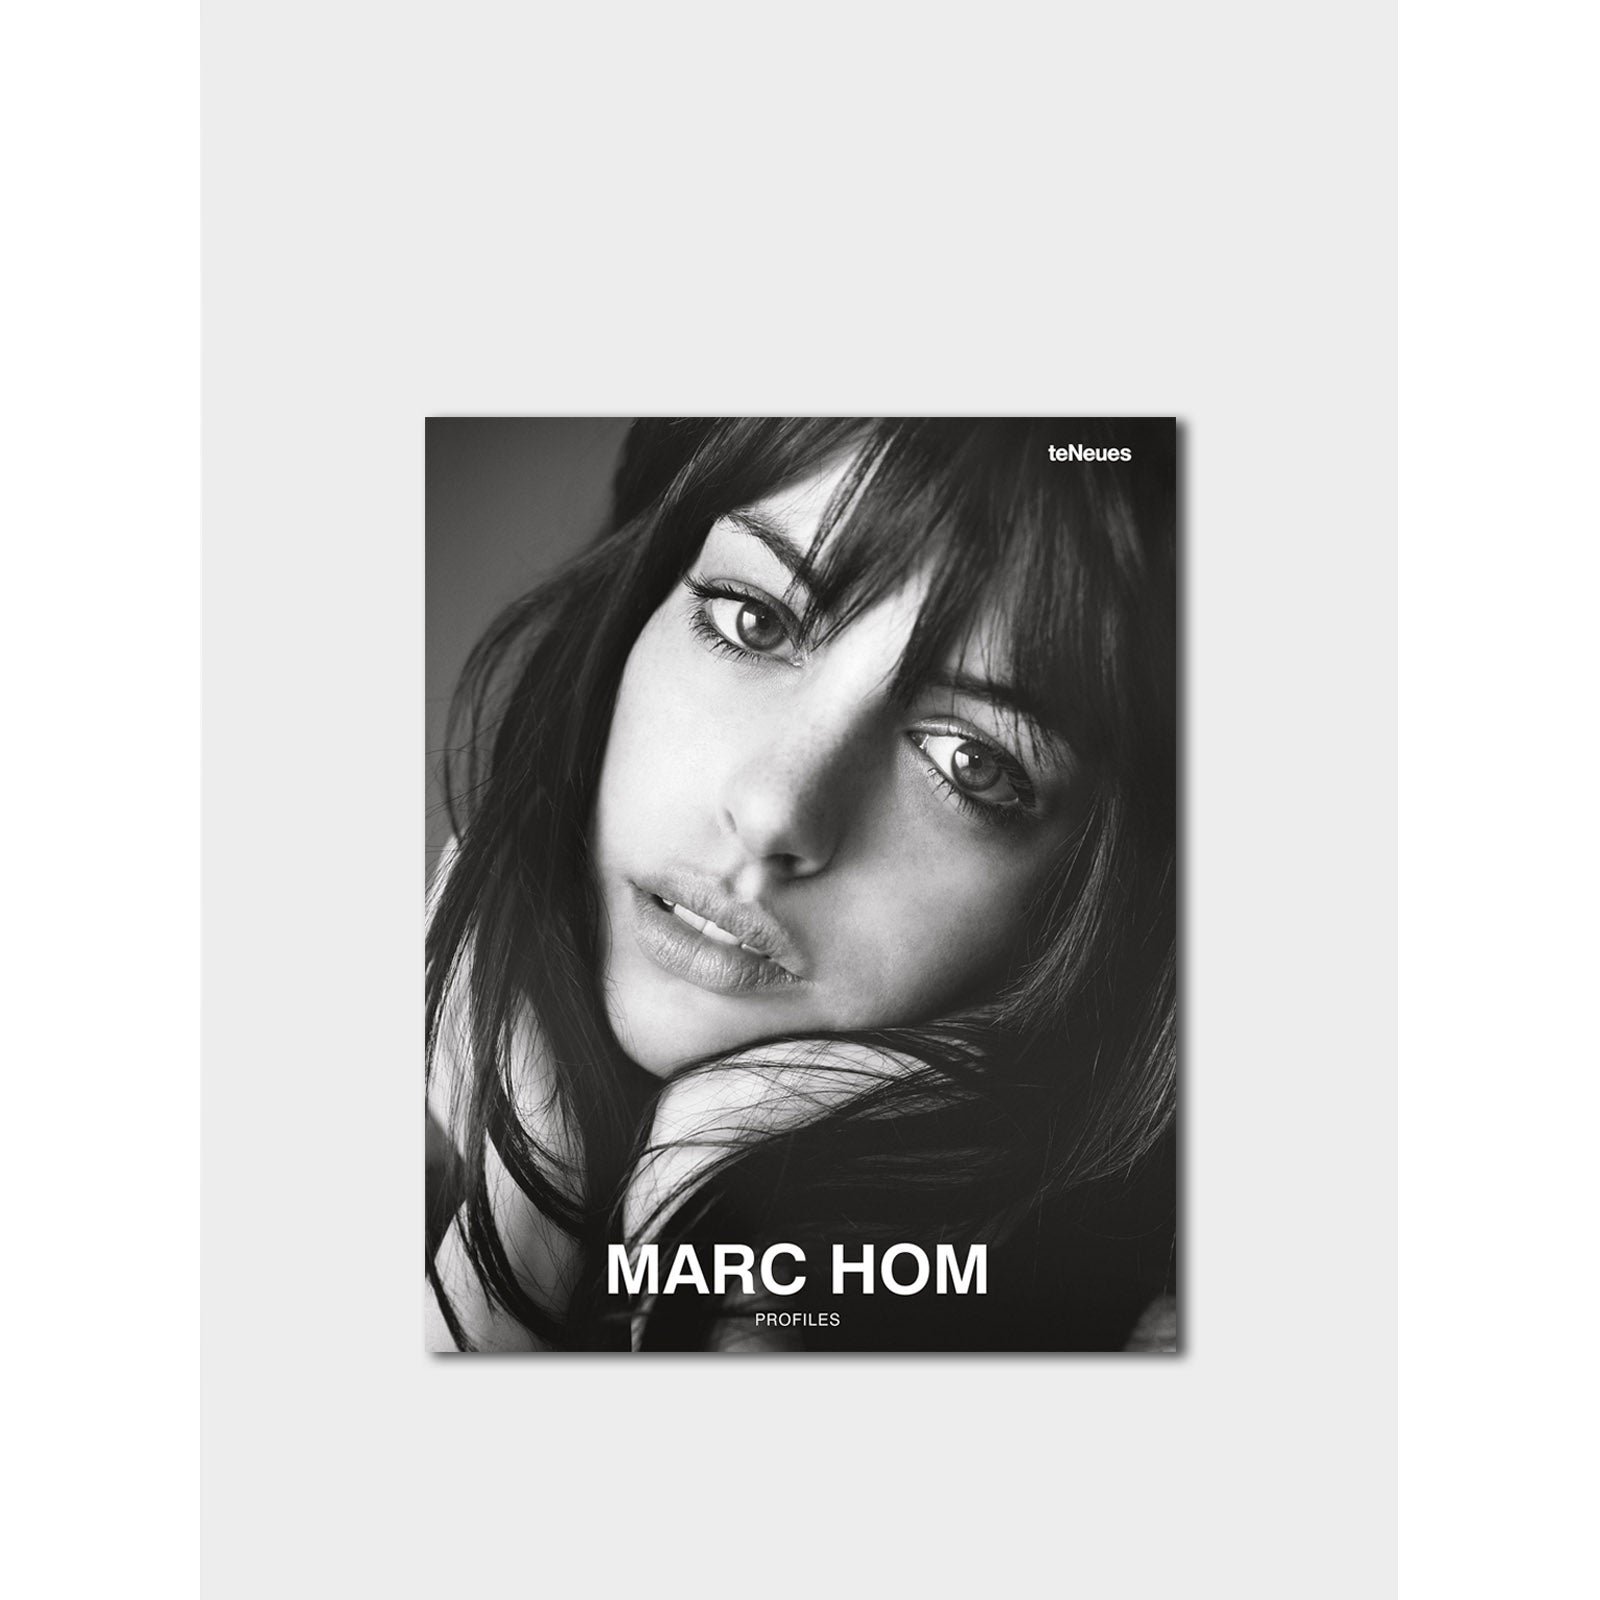 MARC HOM | PROFILES Signed copy